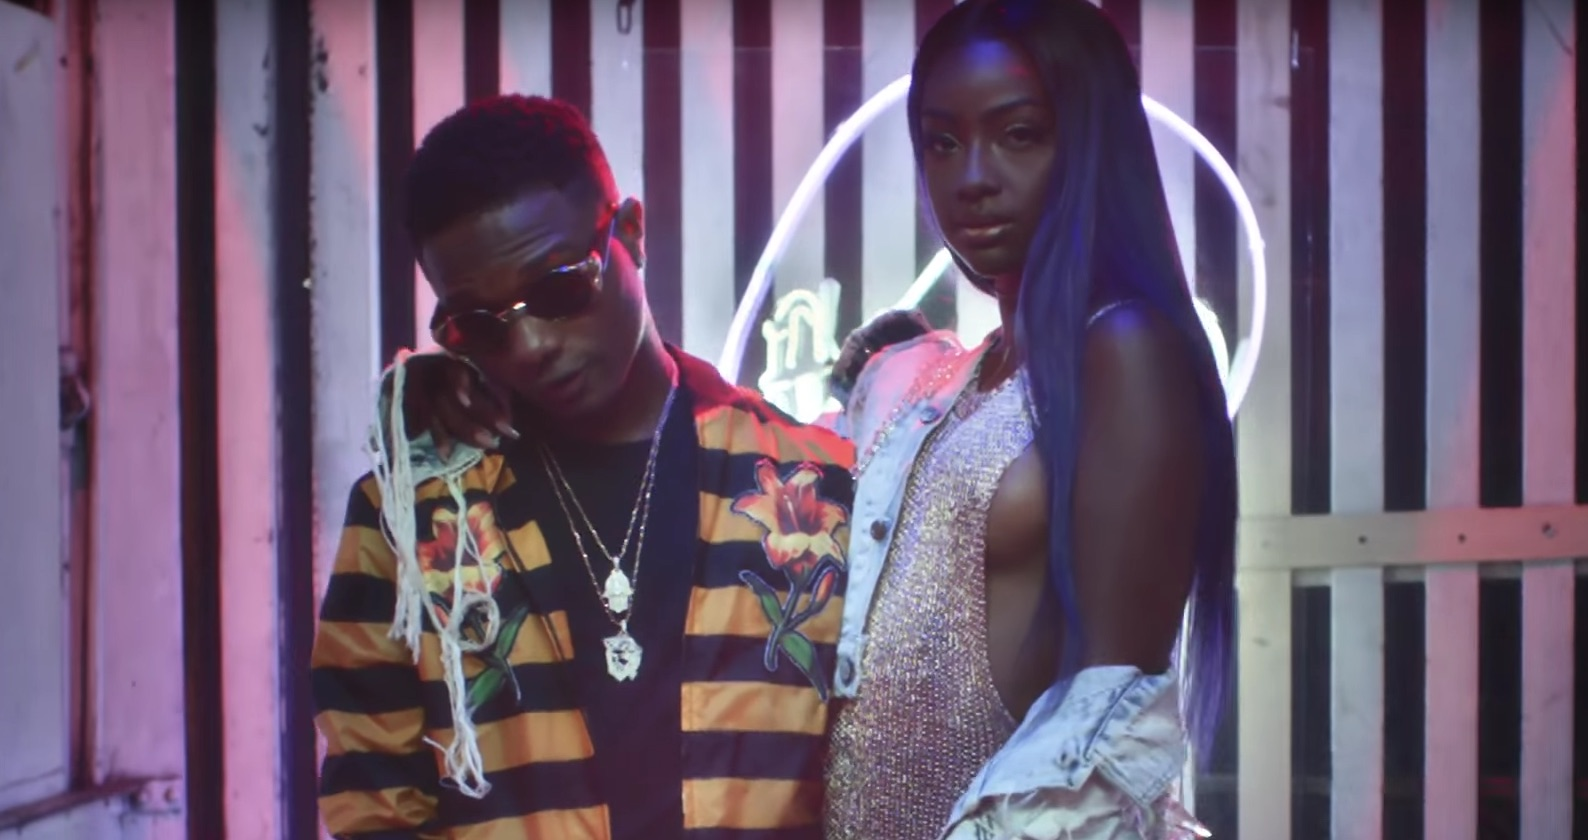 Wizkid Video Video Of The Day Justine Skye U Don T Know Ft Wizkid Trace